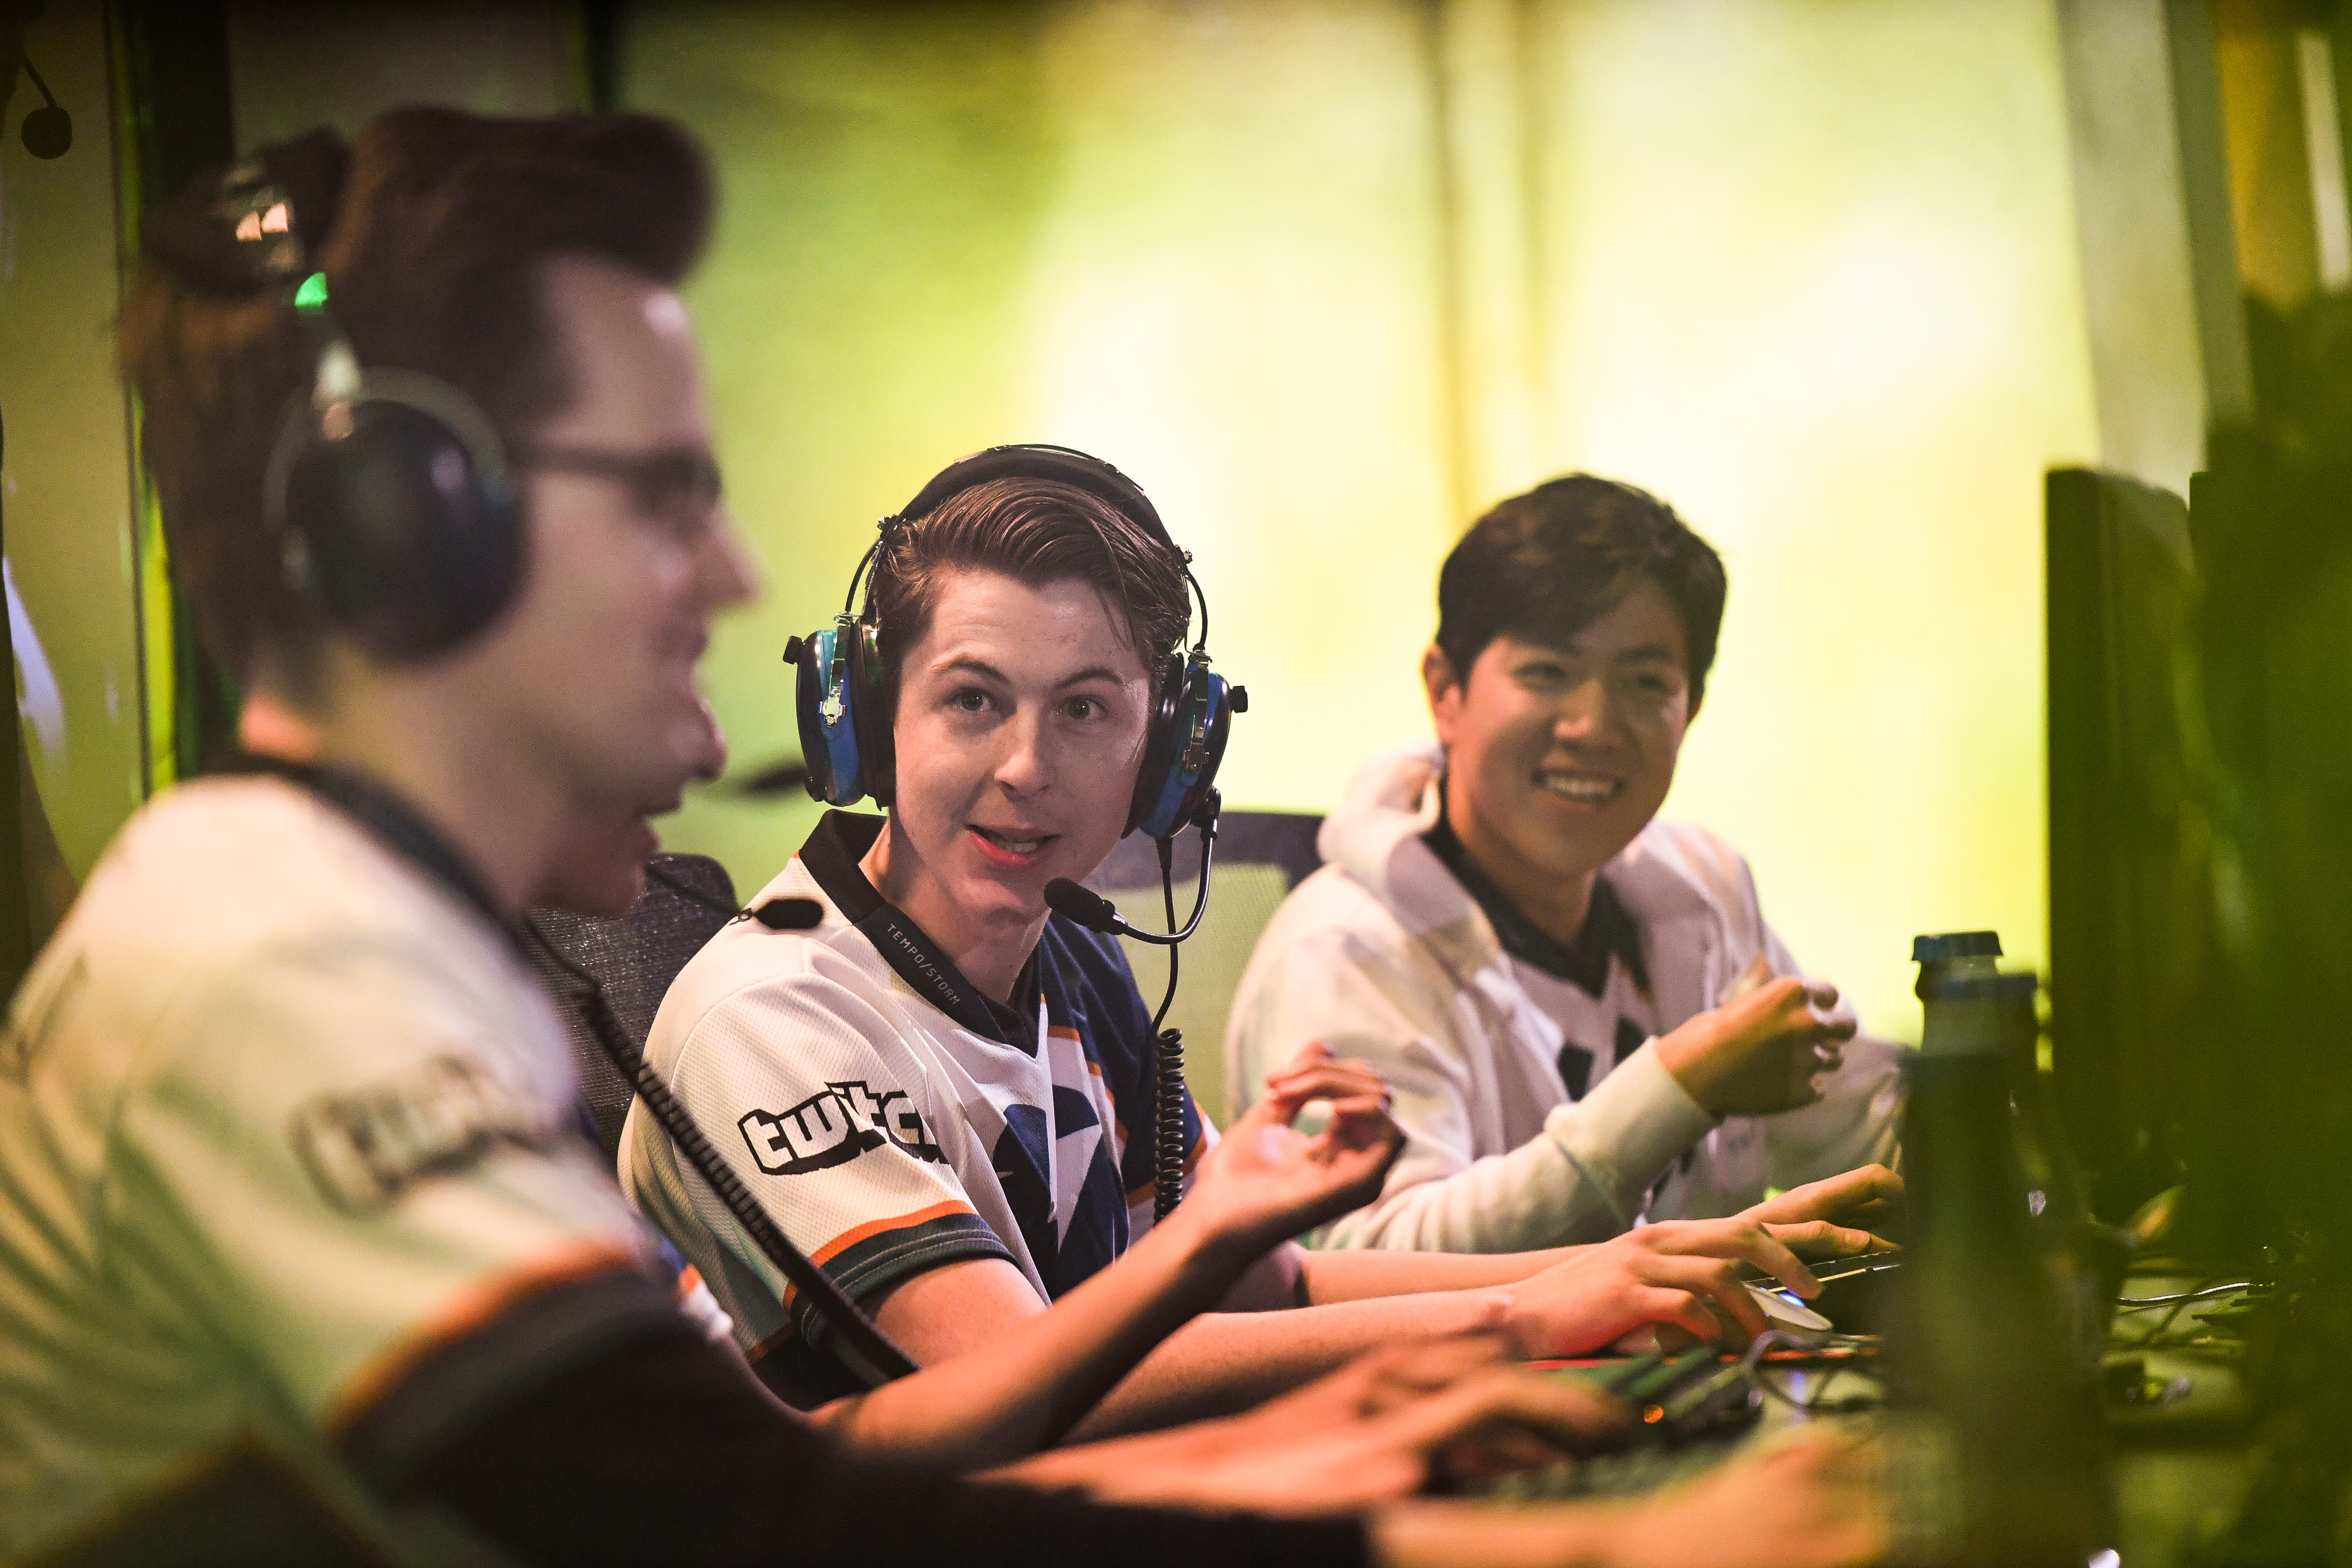 Wow arena esports splyce and method na stand unopposed blizzcon 2018 cdew and method na closed out the show against northern gaming blue in an intense but short series method na made quick work of ng blue crushing whaazzs publicscrutiny Choice Image